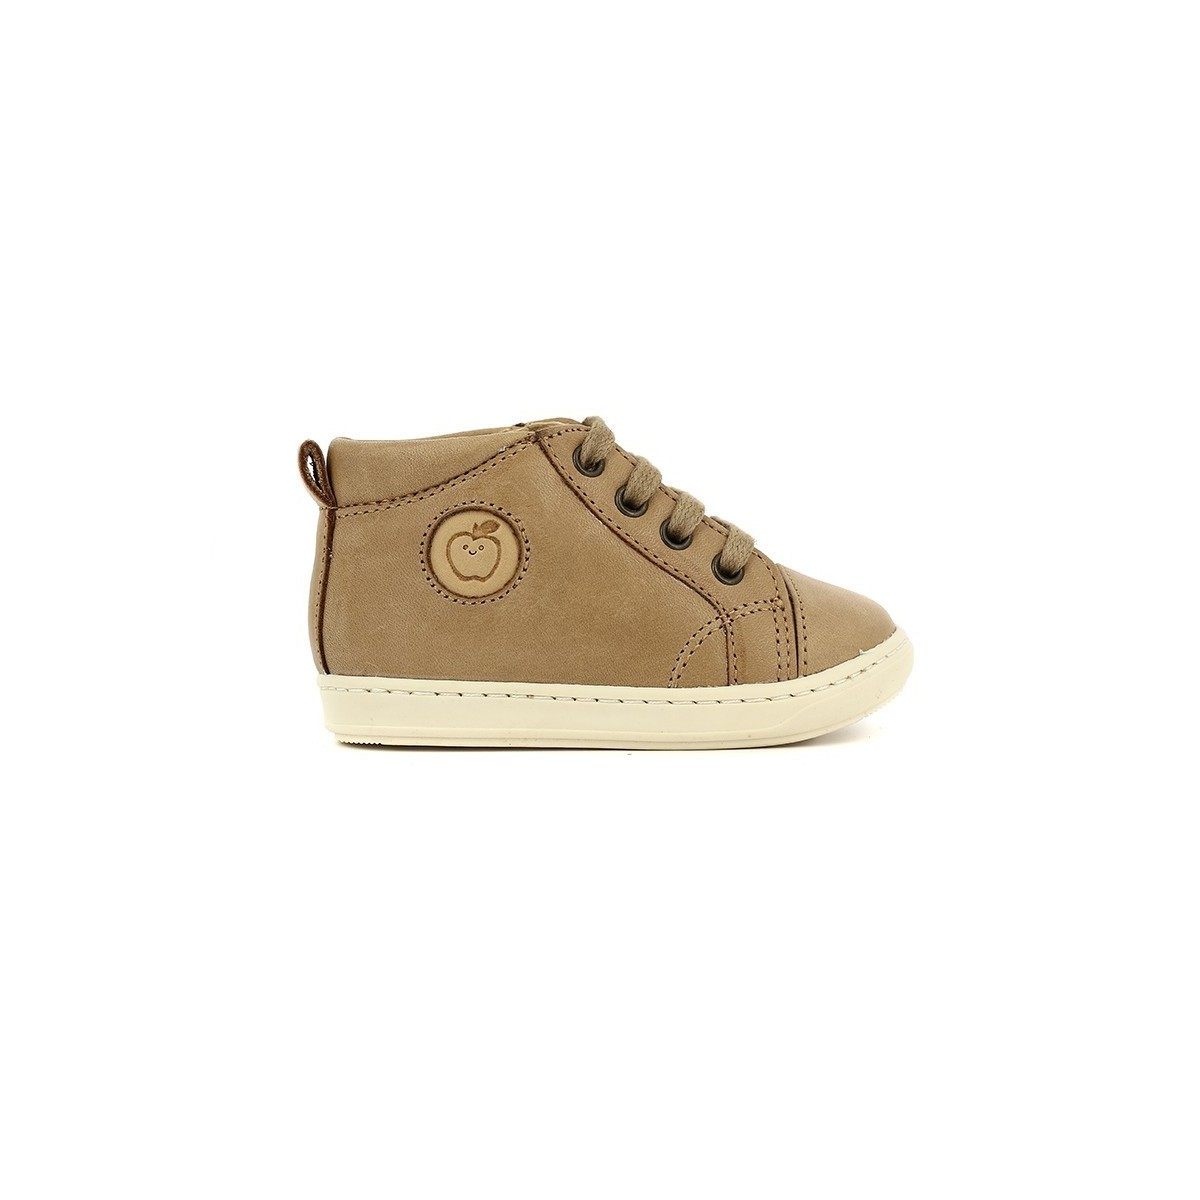 Bottine Bouba lacets cuir camel